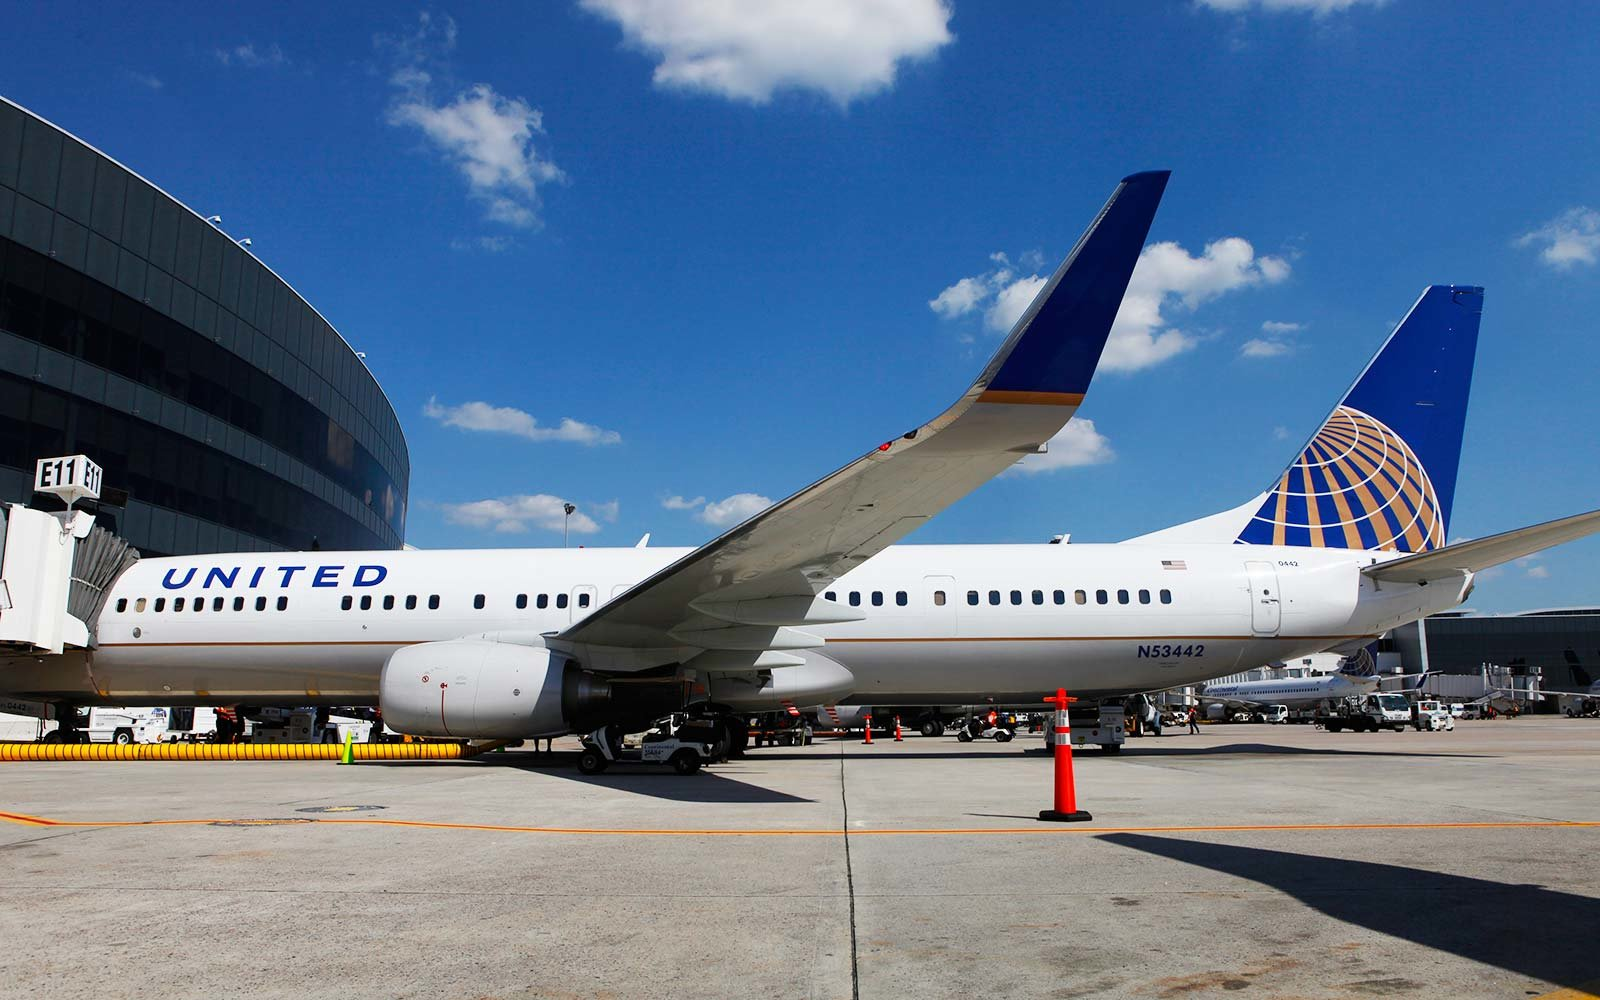 United Airlines plane airport tarmac Colorado Summer Overheat Baby